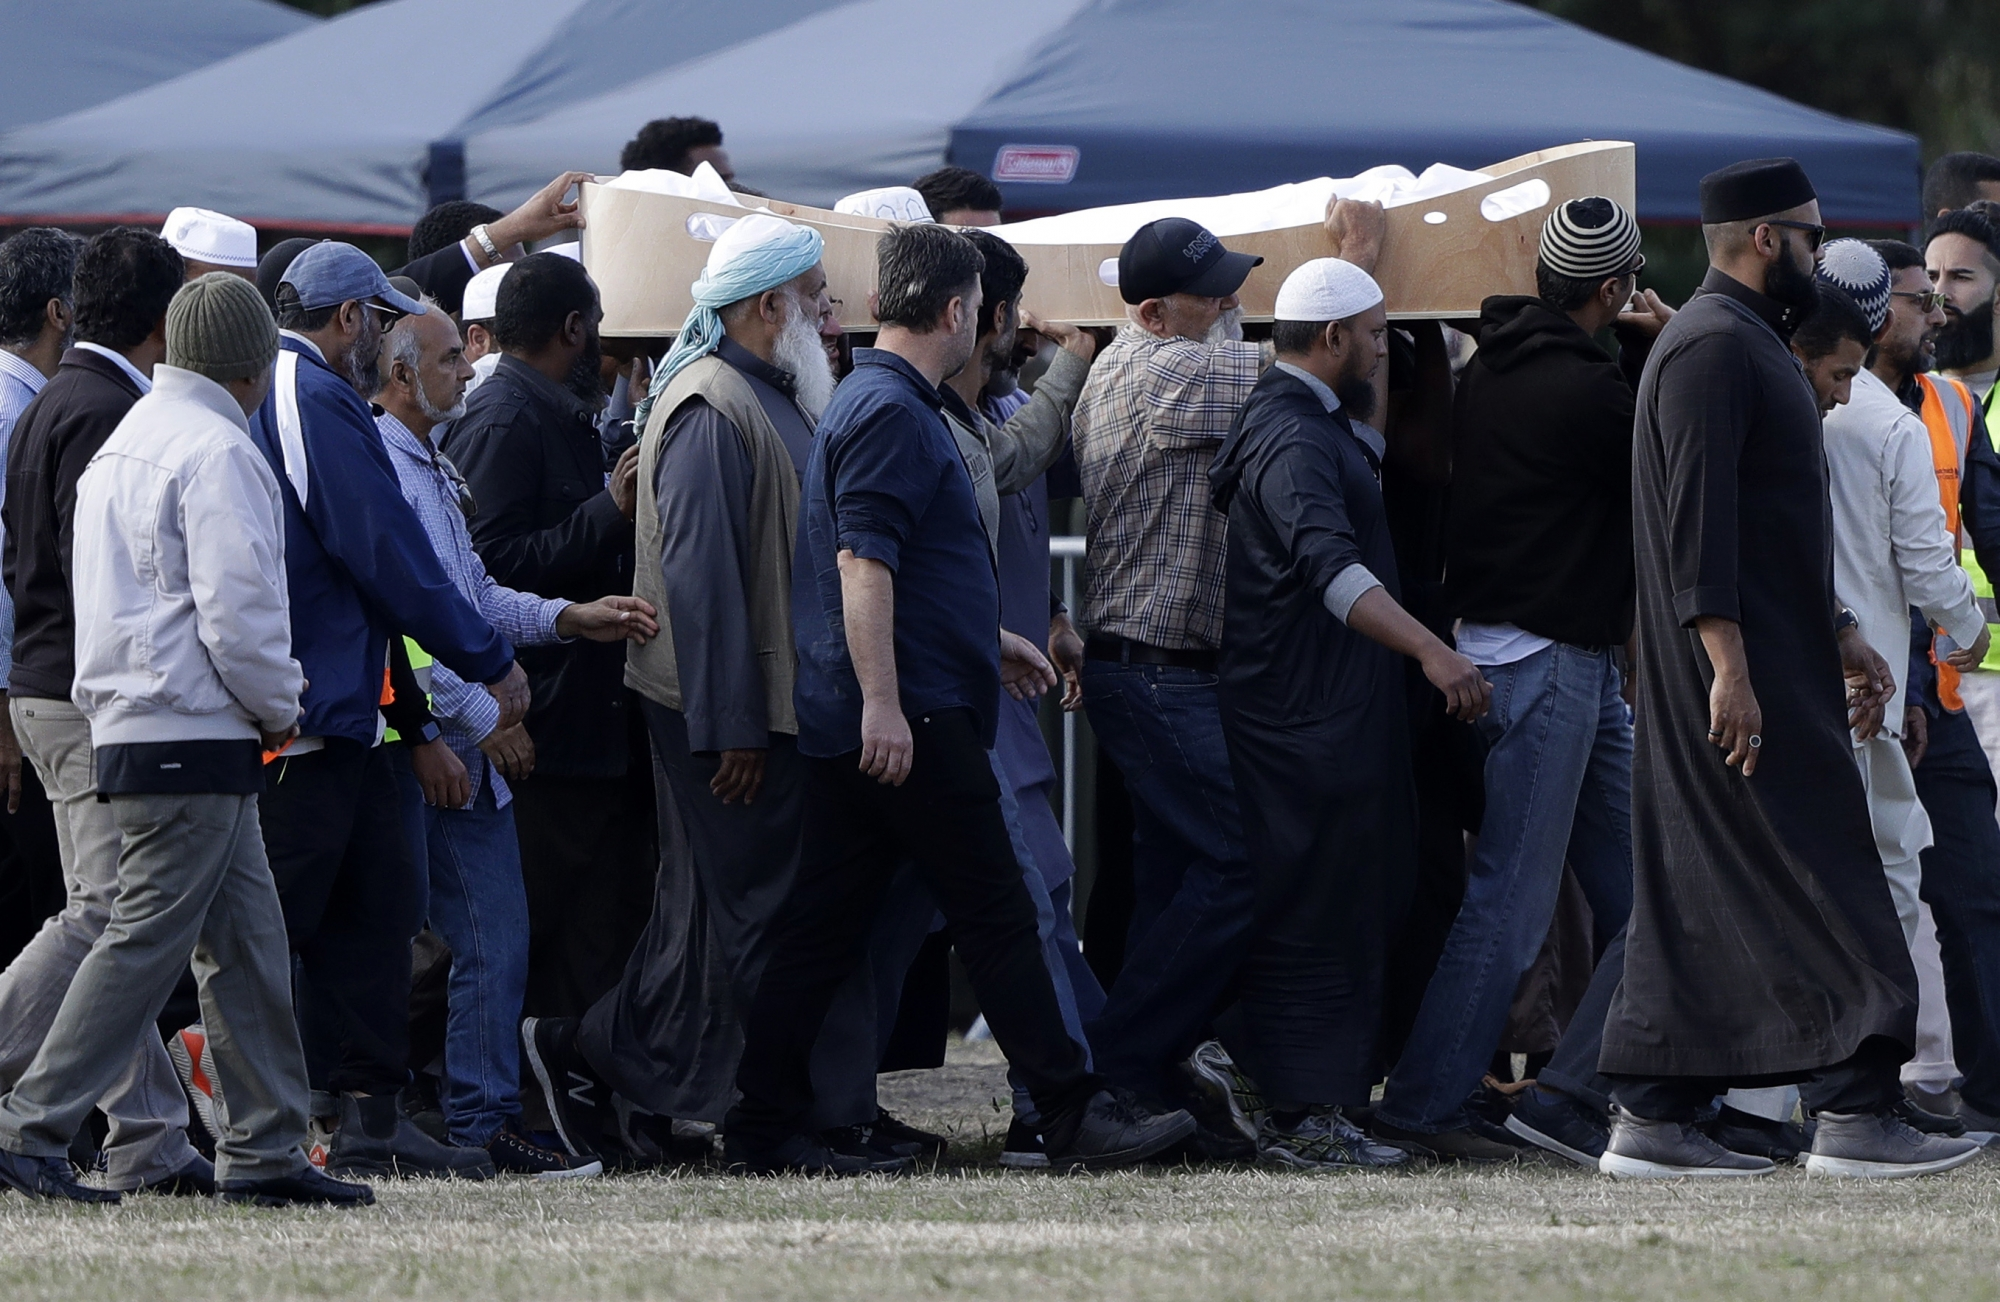 Masjid New Zealand Photo: The Latest: Erdogan Says Mosque Gunman No Different From